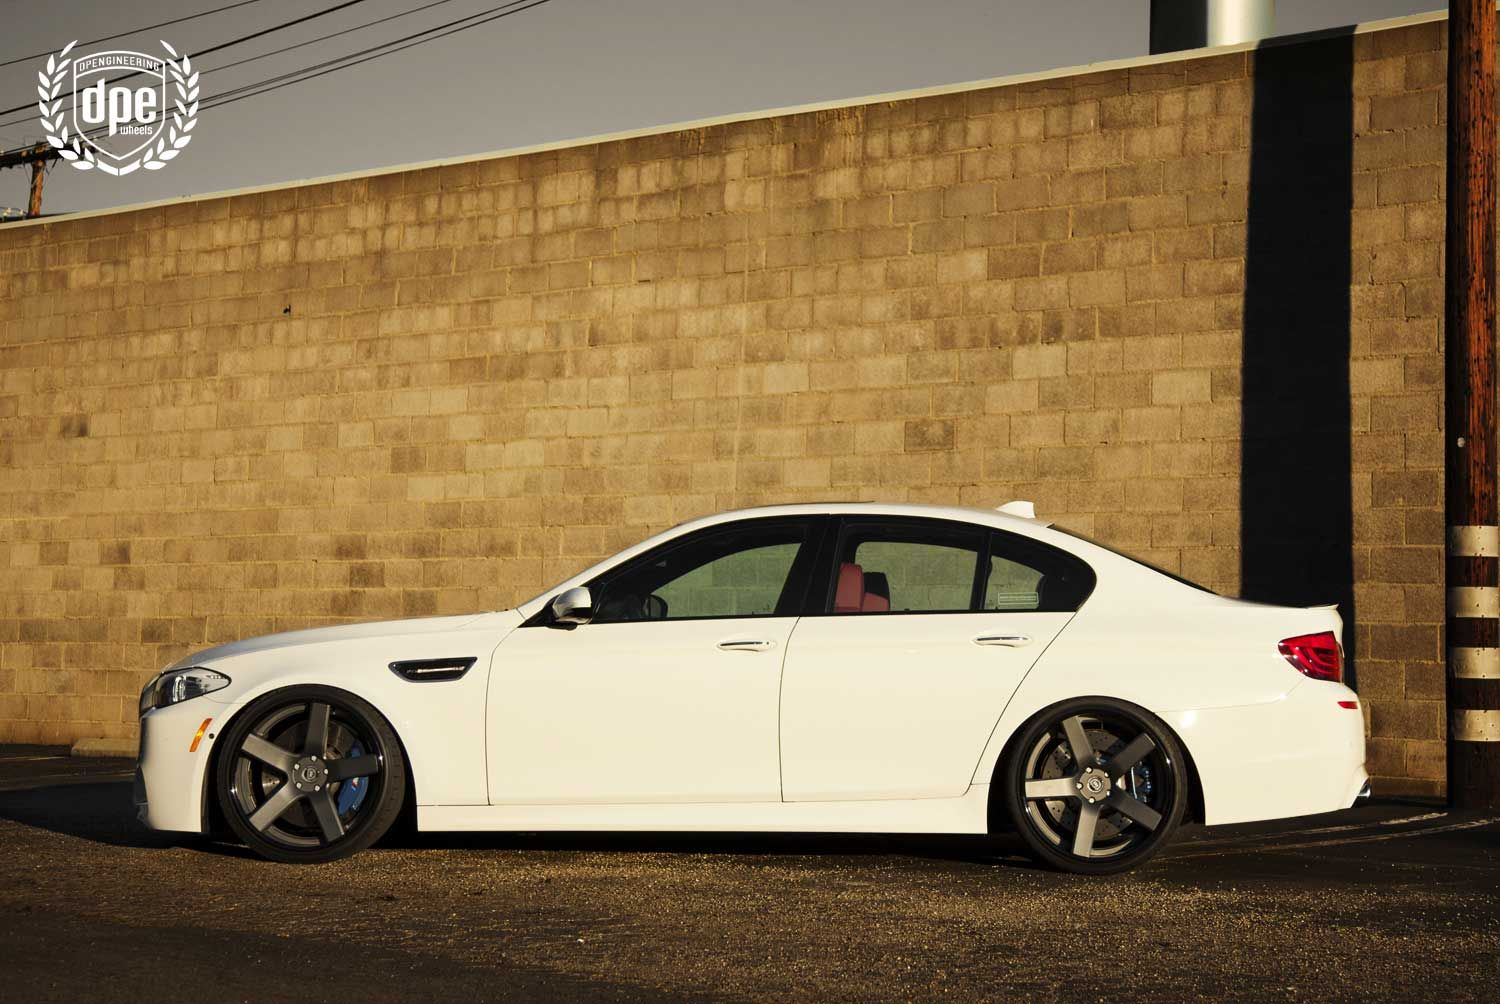 F10 bmw m5 with 21 inch dpe csr05 black wheels 3 jpg 1 500 1 004 pixels 550i tuning pinterest bmw m5 bmw and dream cars